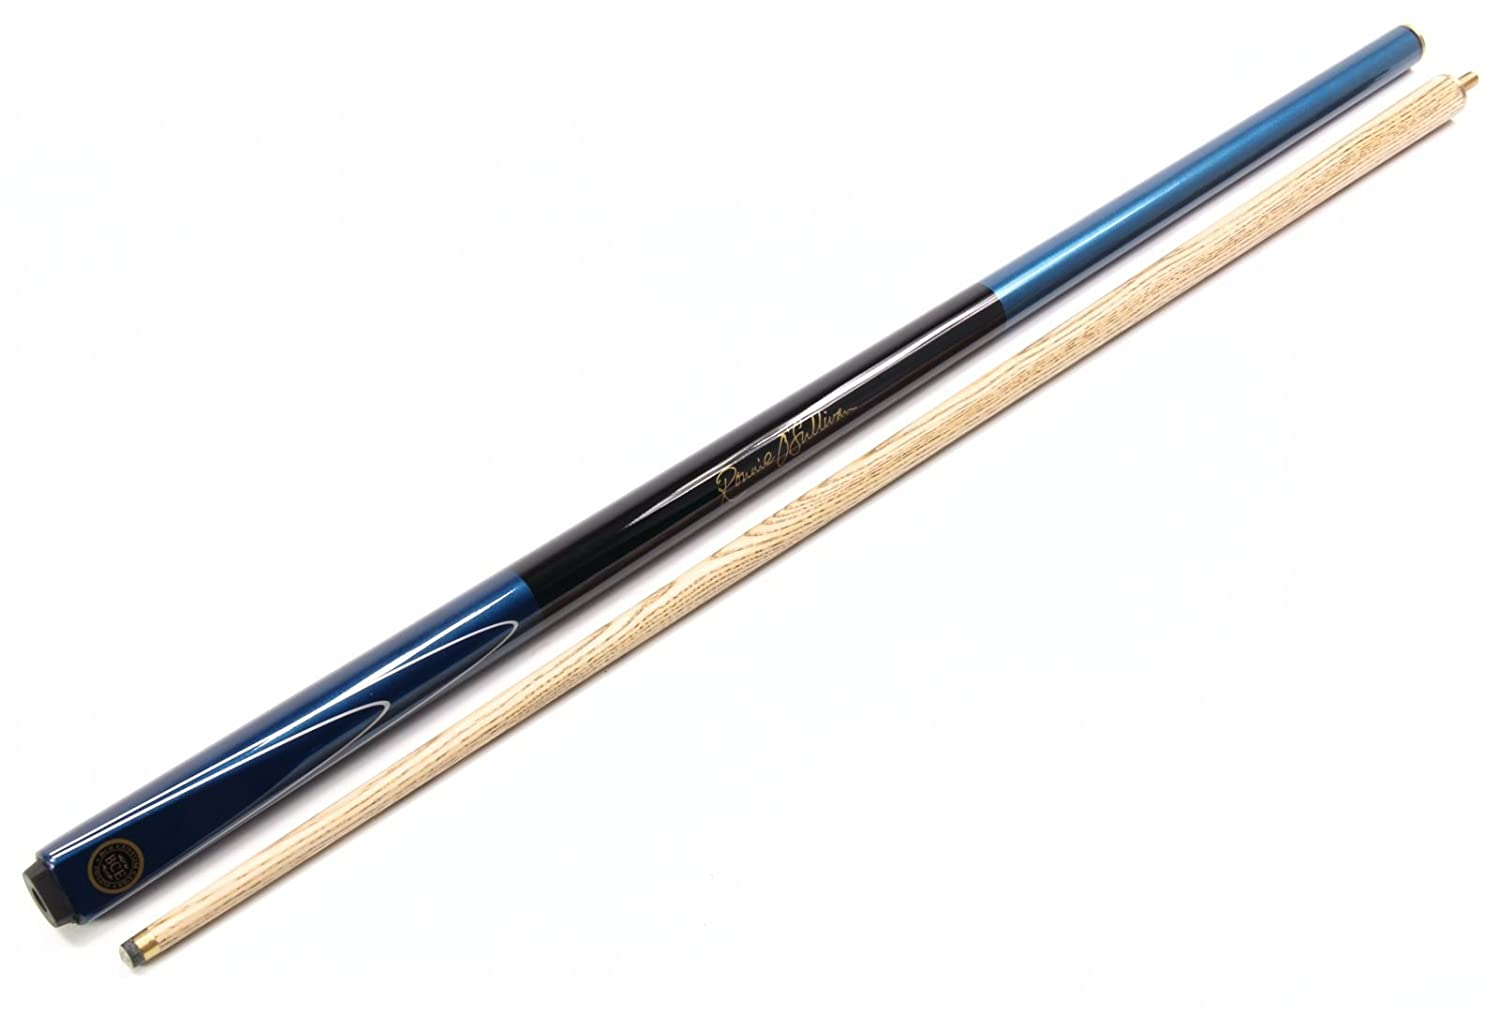 Metallic 2pc Ash Pool Snooker Cue with Painted Black Grip and 9.5mm Tip RILEY Ronnie O`Sullivan MERLIN